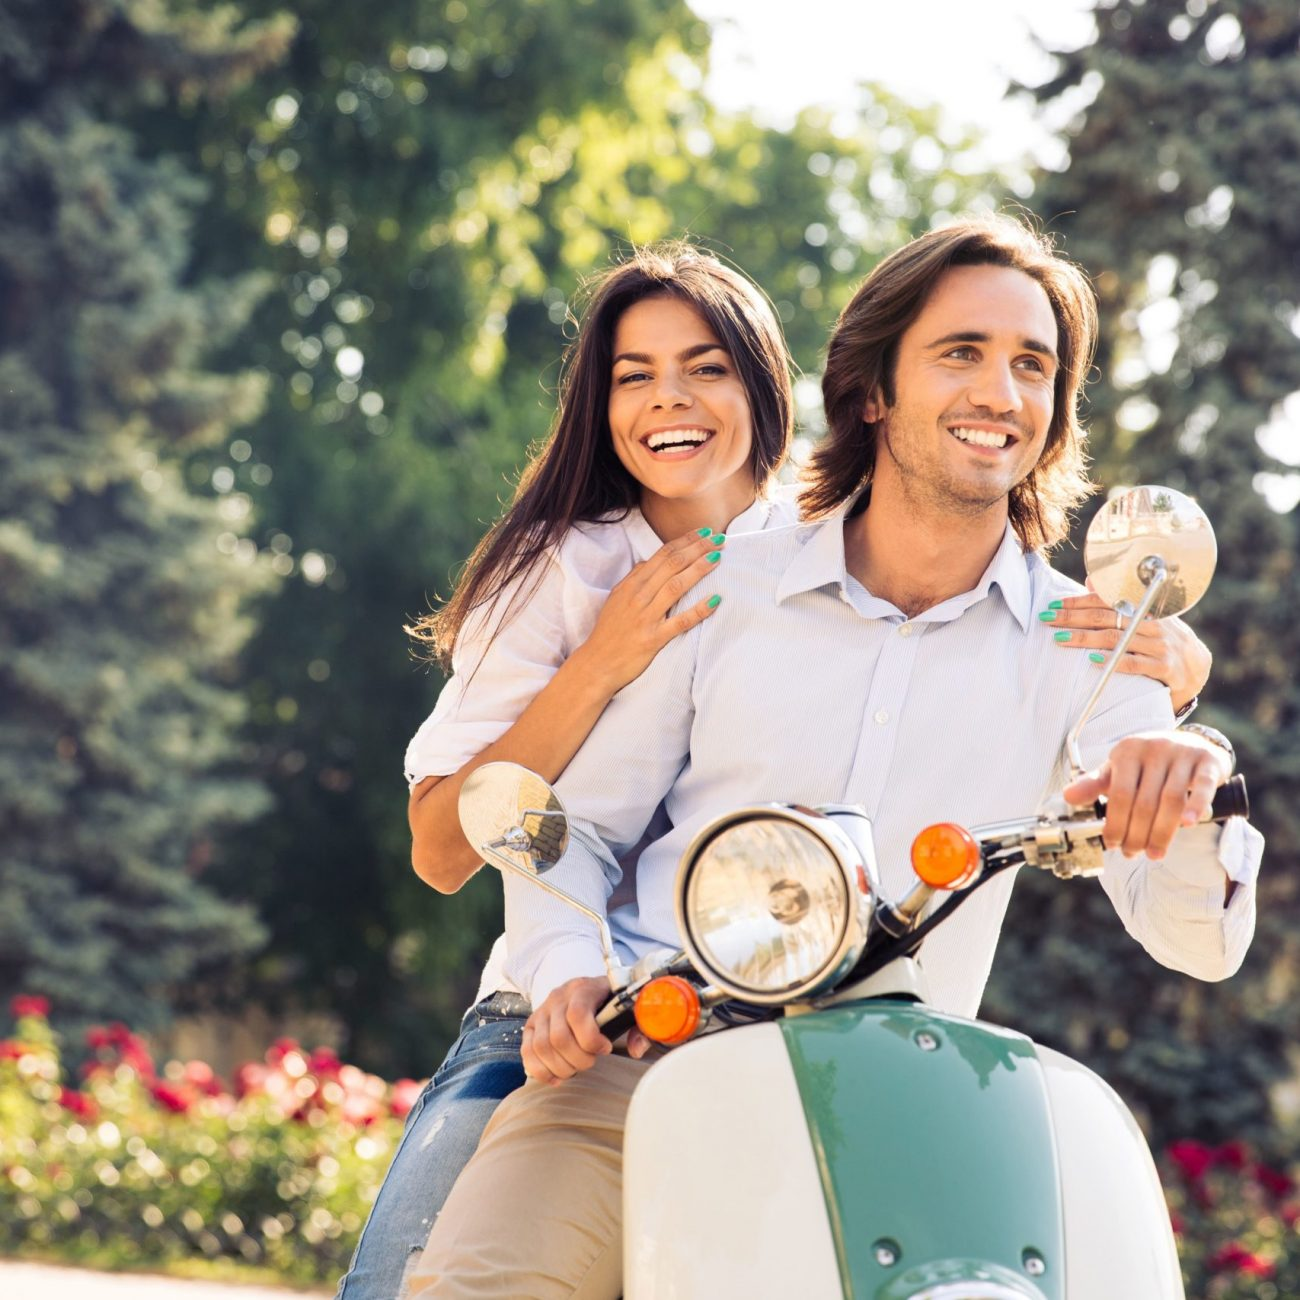 cheerful-young-couple-riding-scooter-town-with-fun